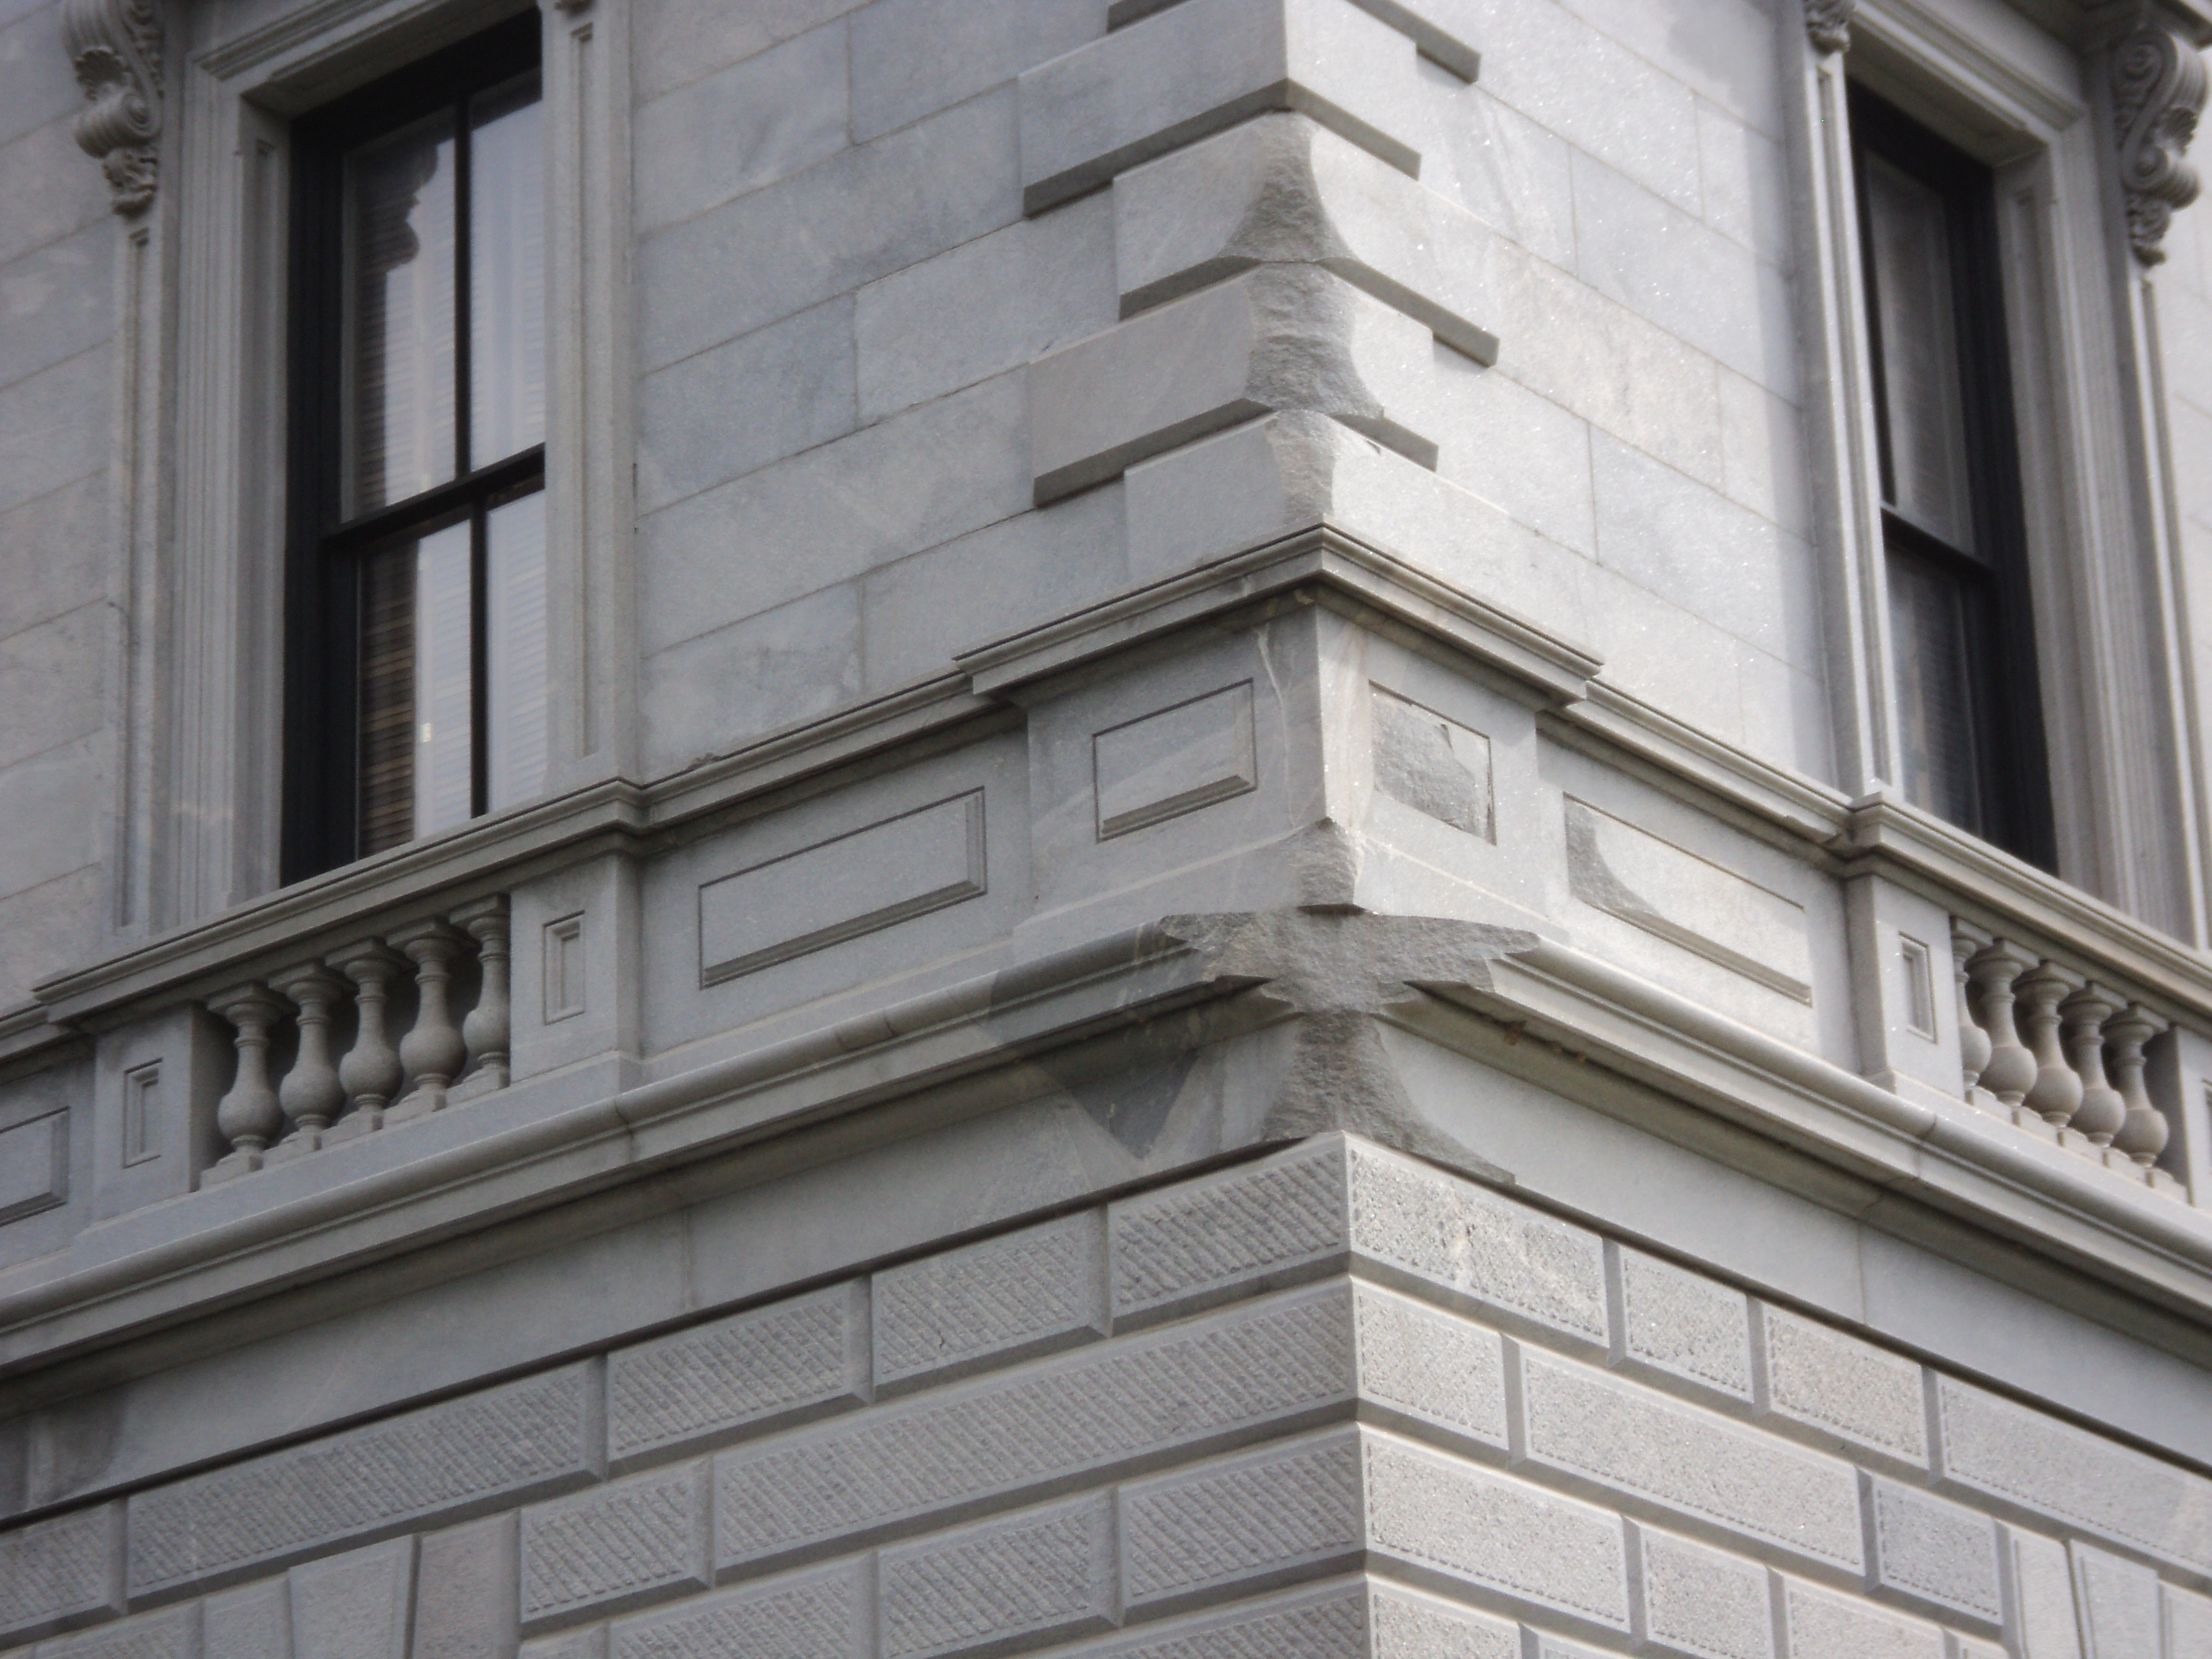 Damage on the S.C. State House